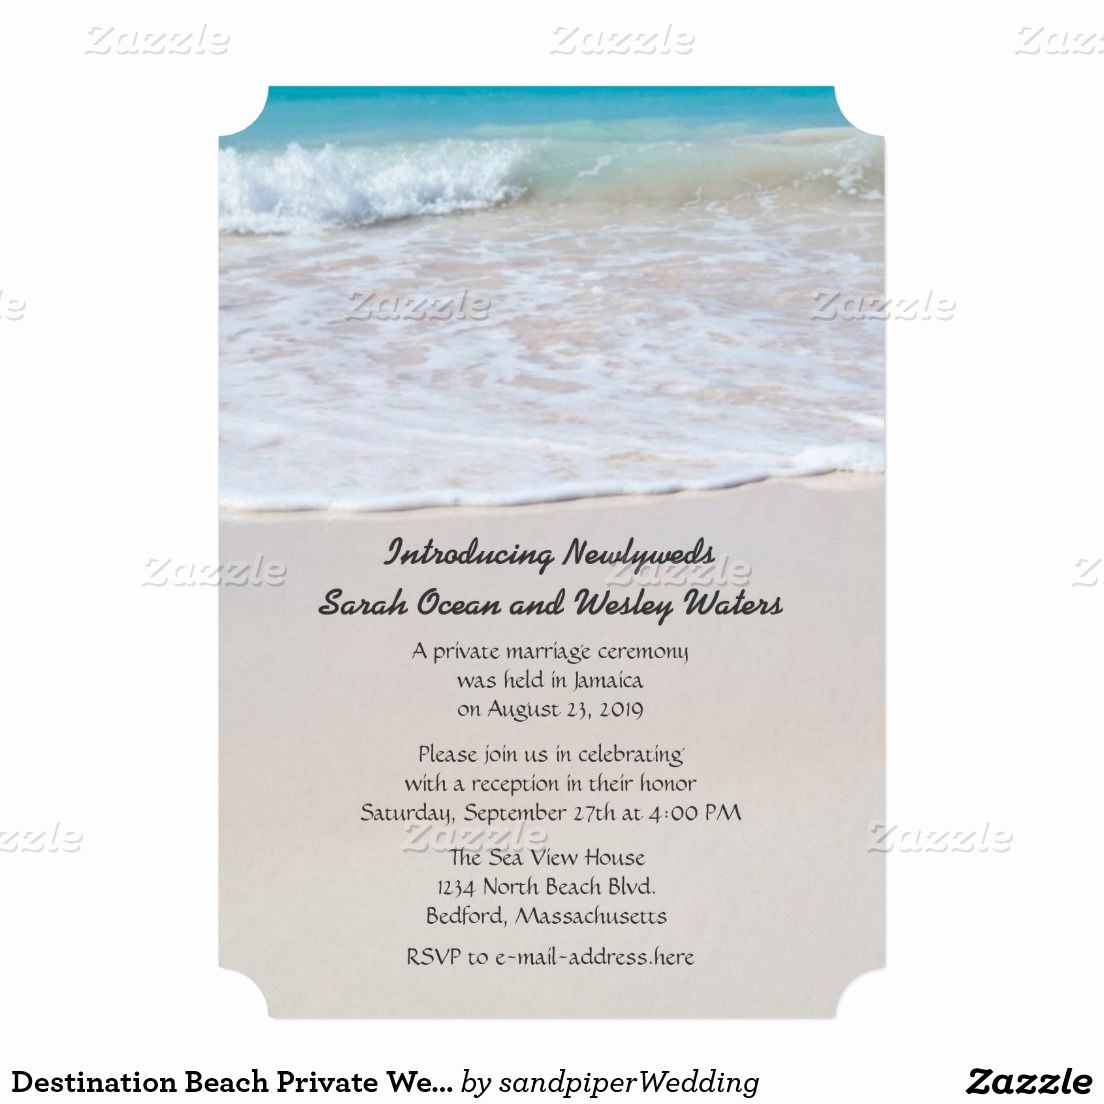 Private Wedding Ceremony Invitation Lovely Writing In the Sand Wedding Announcement